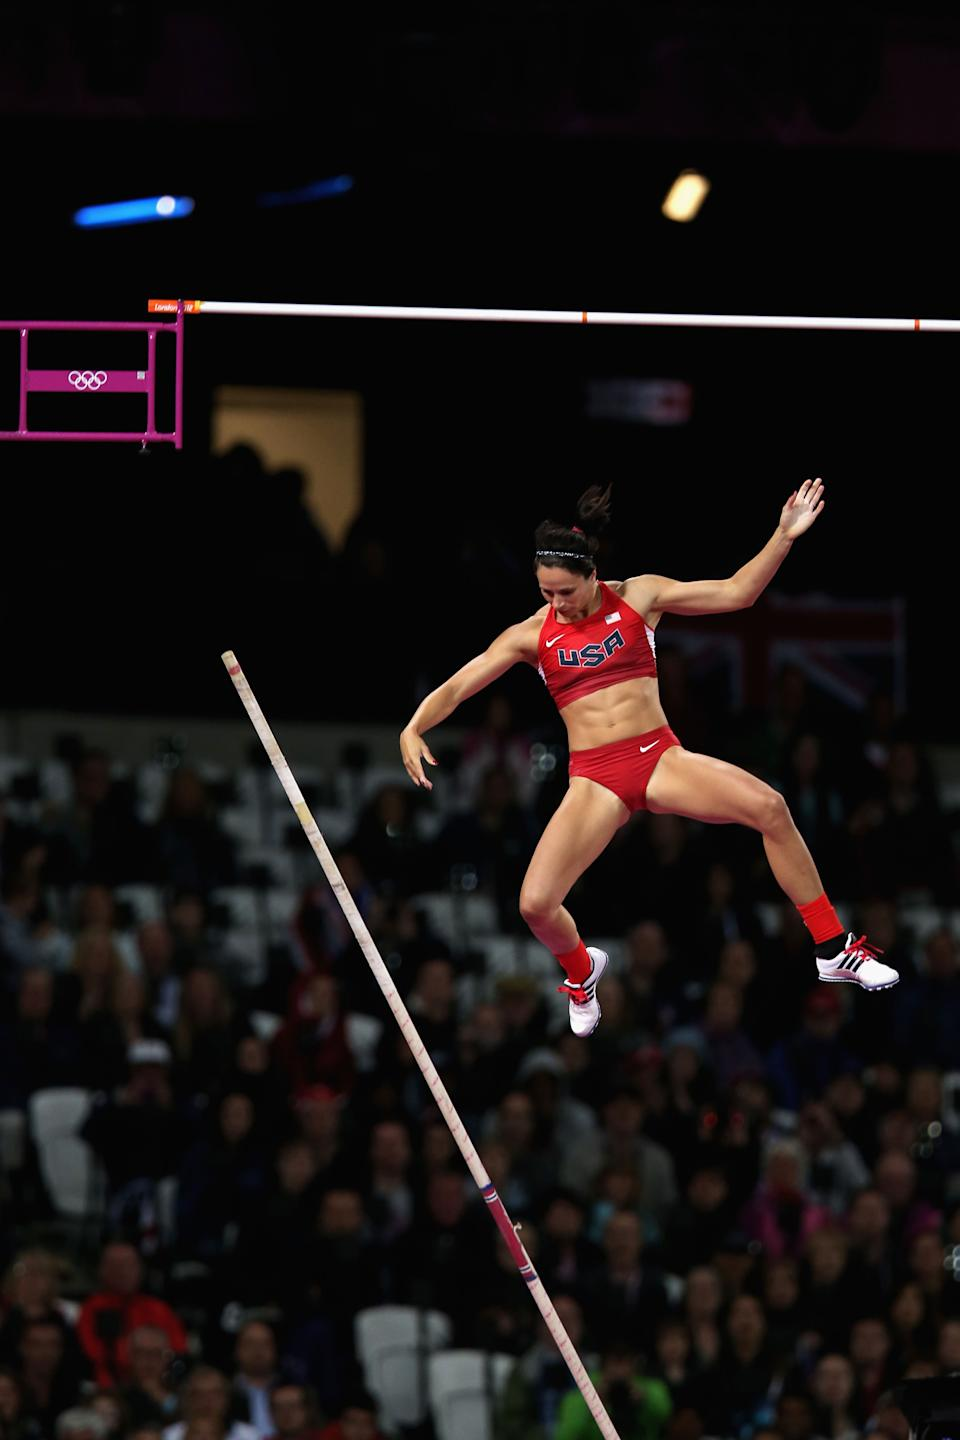 Jennifer Suhr of the United States competes in the Women's Pole Vault final on Day 10 of the London 2012 Olympic Games at the Olympic Stadium on August 6, 2012 in London, England. (Photo by Hannah Johnston/Getty Images)